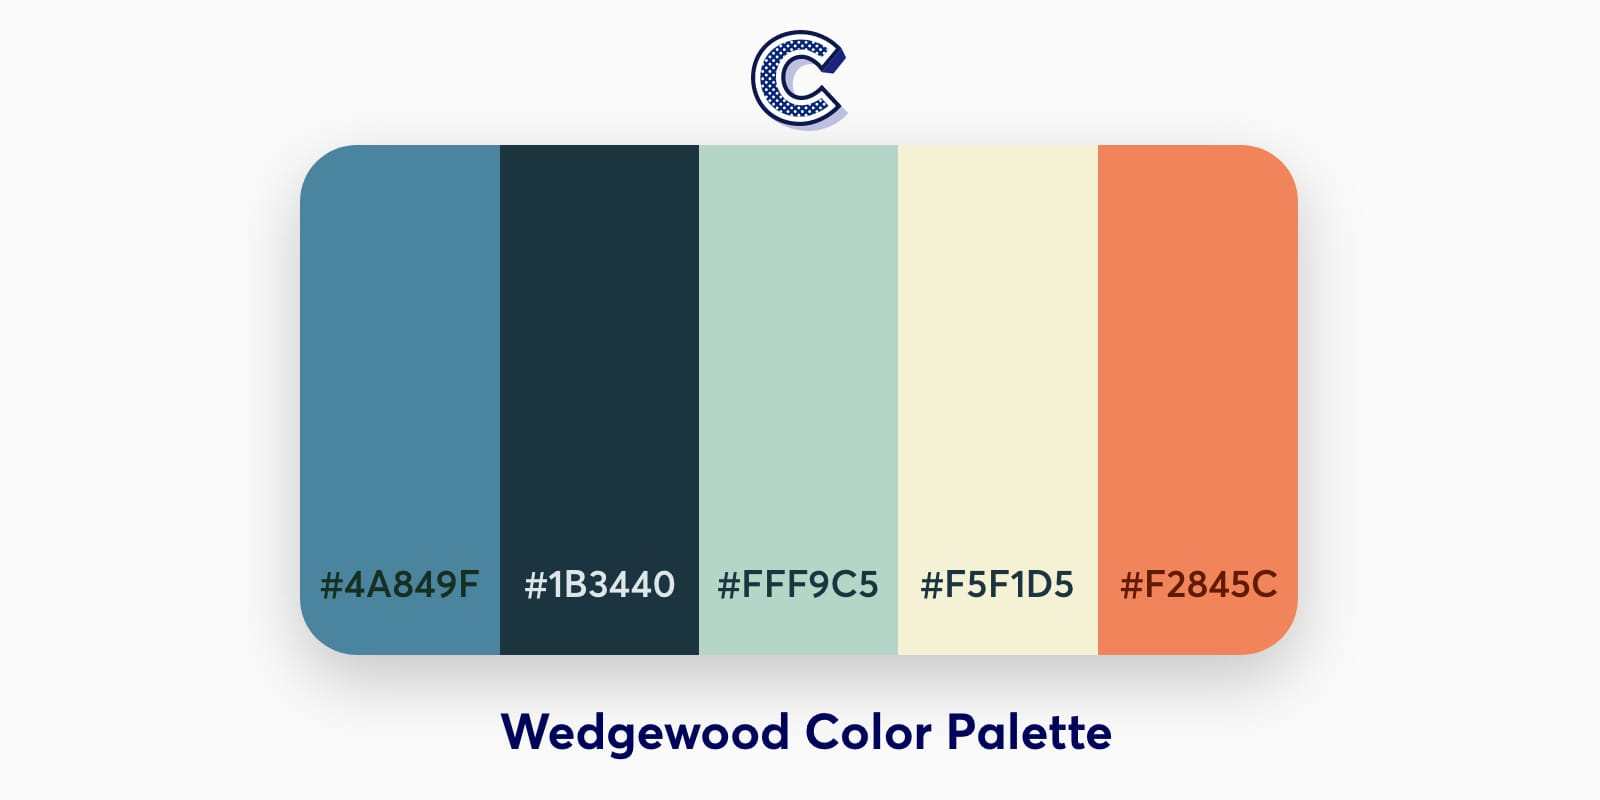 the featured image of Wedgewood Color Palette